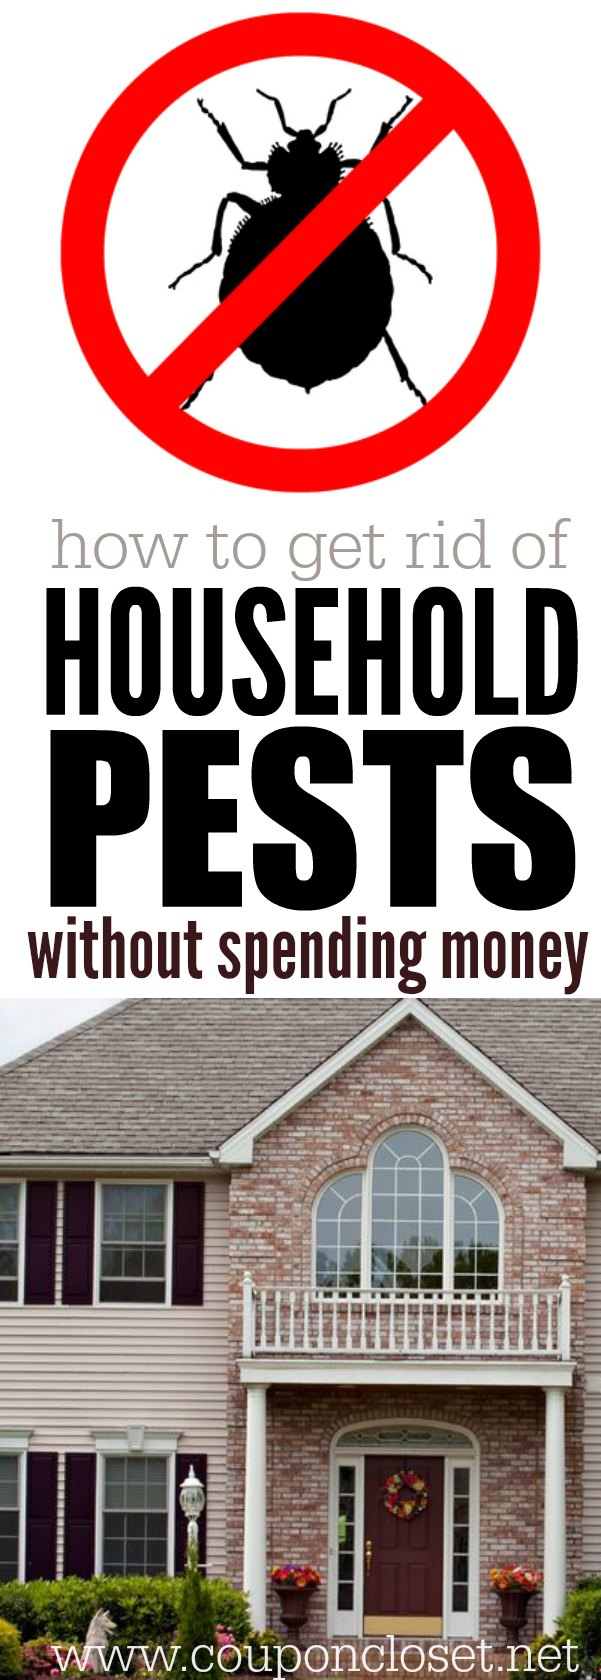 How to get rid of bugs naturally. You don't need a lot of money. Learn how to get rid of household pests without spending any money at all.